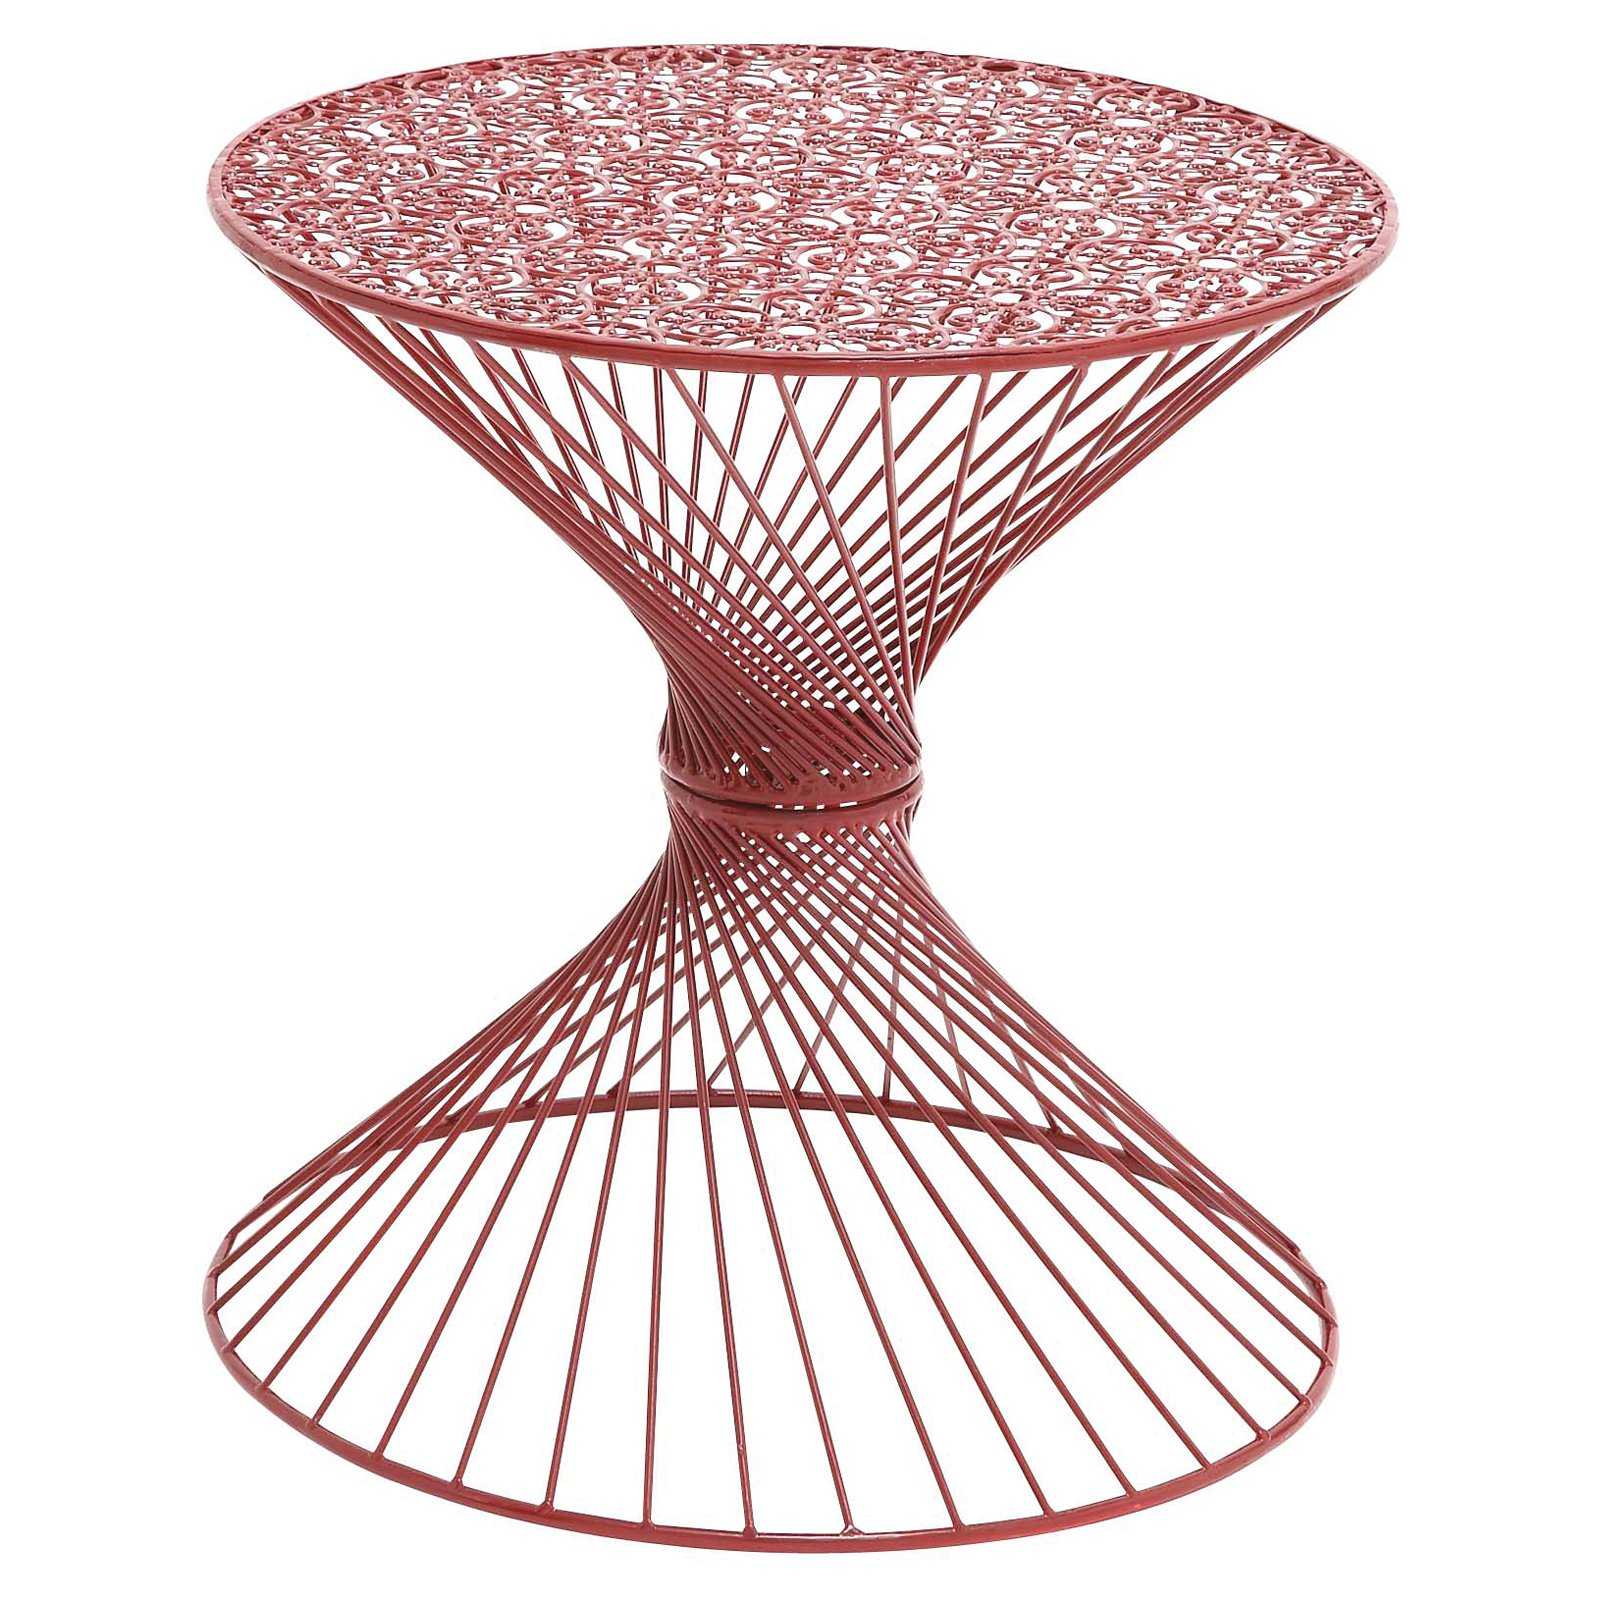 wrought table threshold accent corranade round top metal iron patio outdoor white tables glass target base legs drum bronze sun umbrella square dining room kitchen nate berkus rug